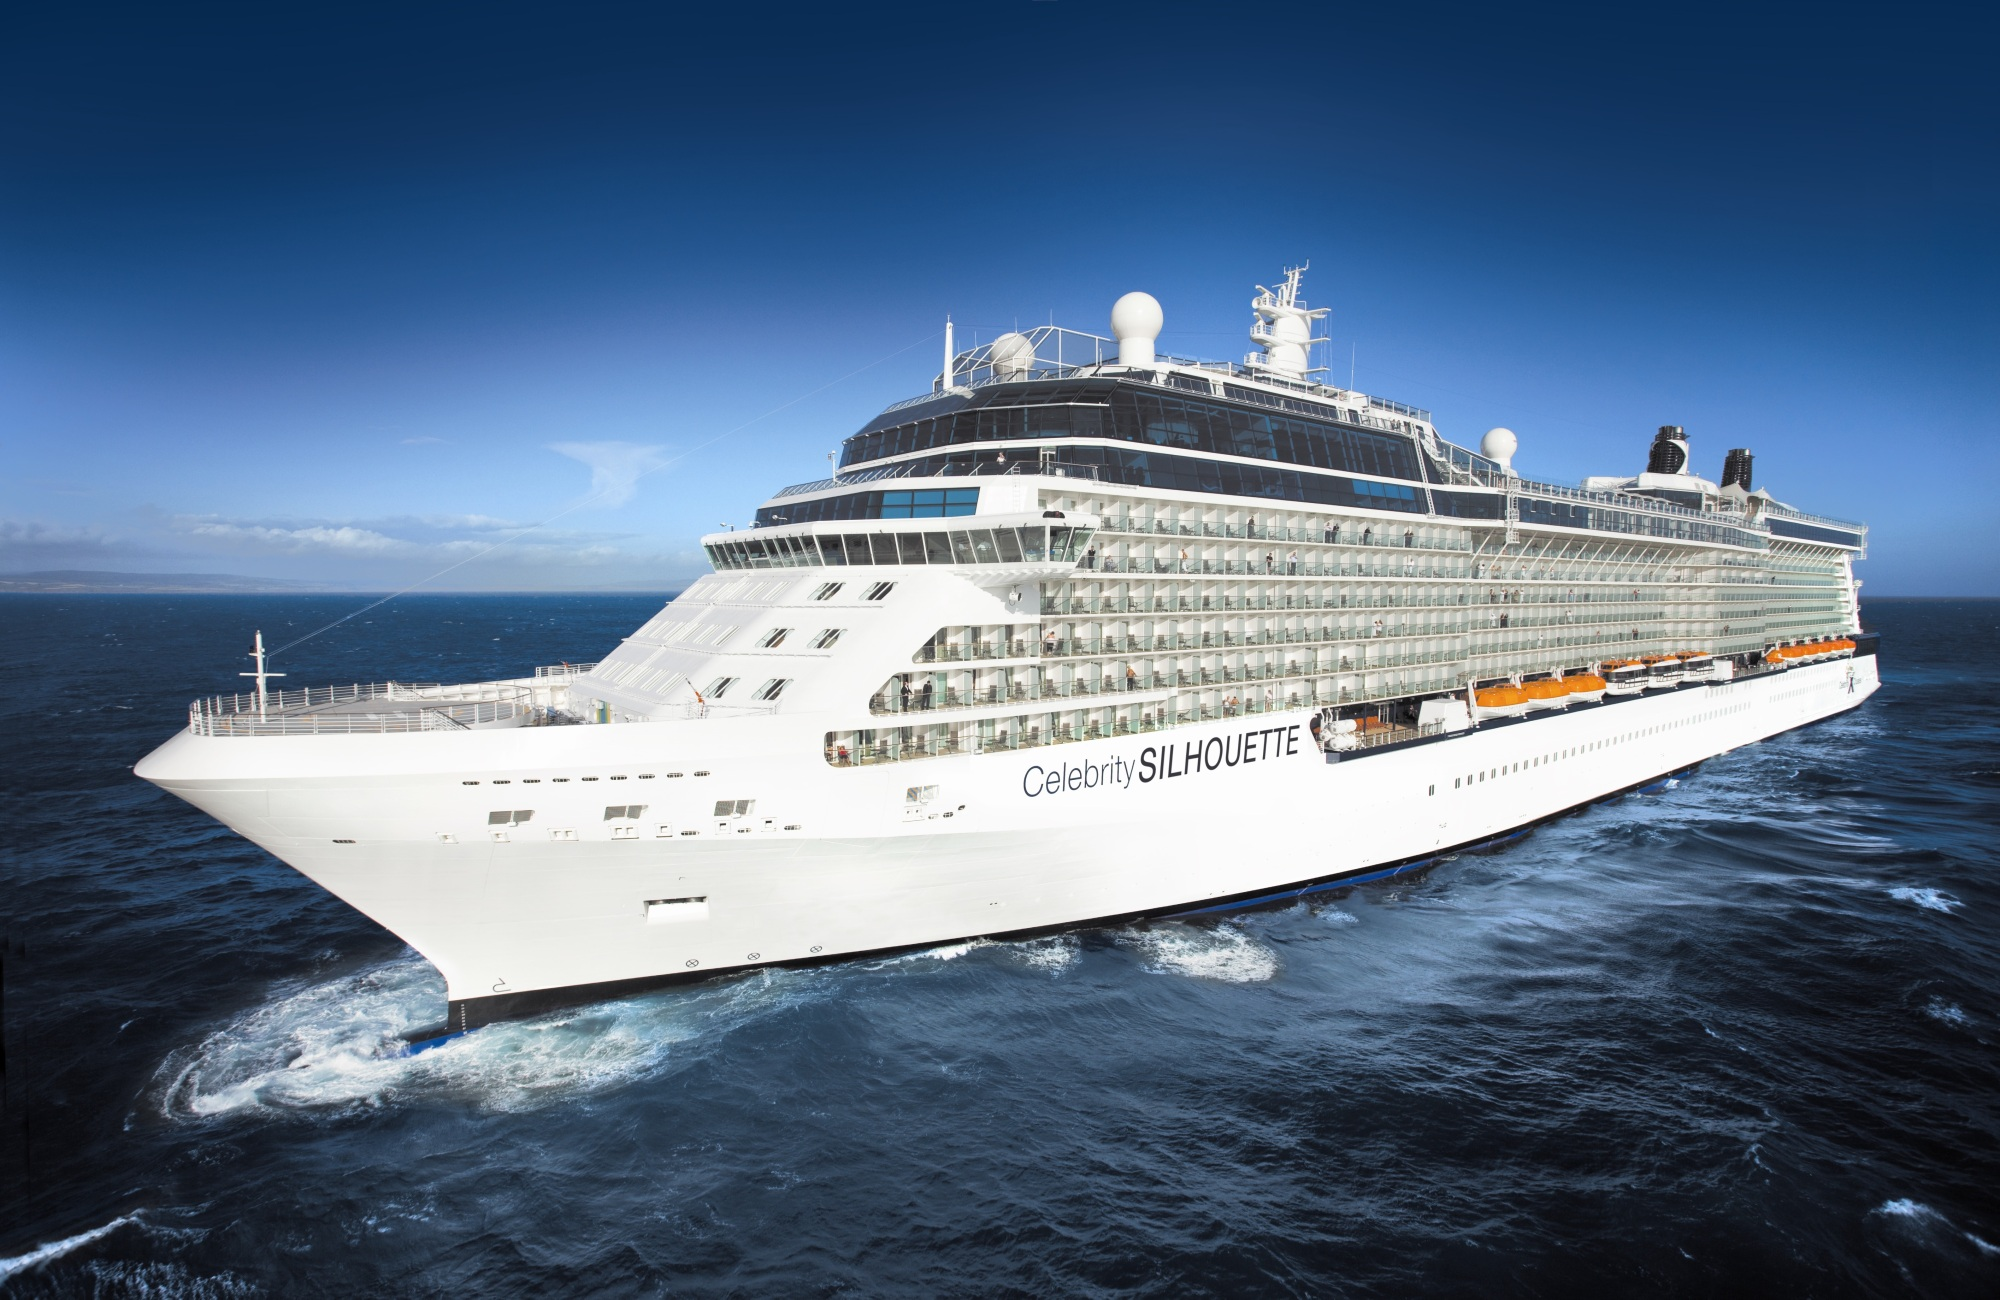 Cruise ship Celebrity Silhouette - Royal Caribbean International